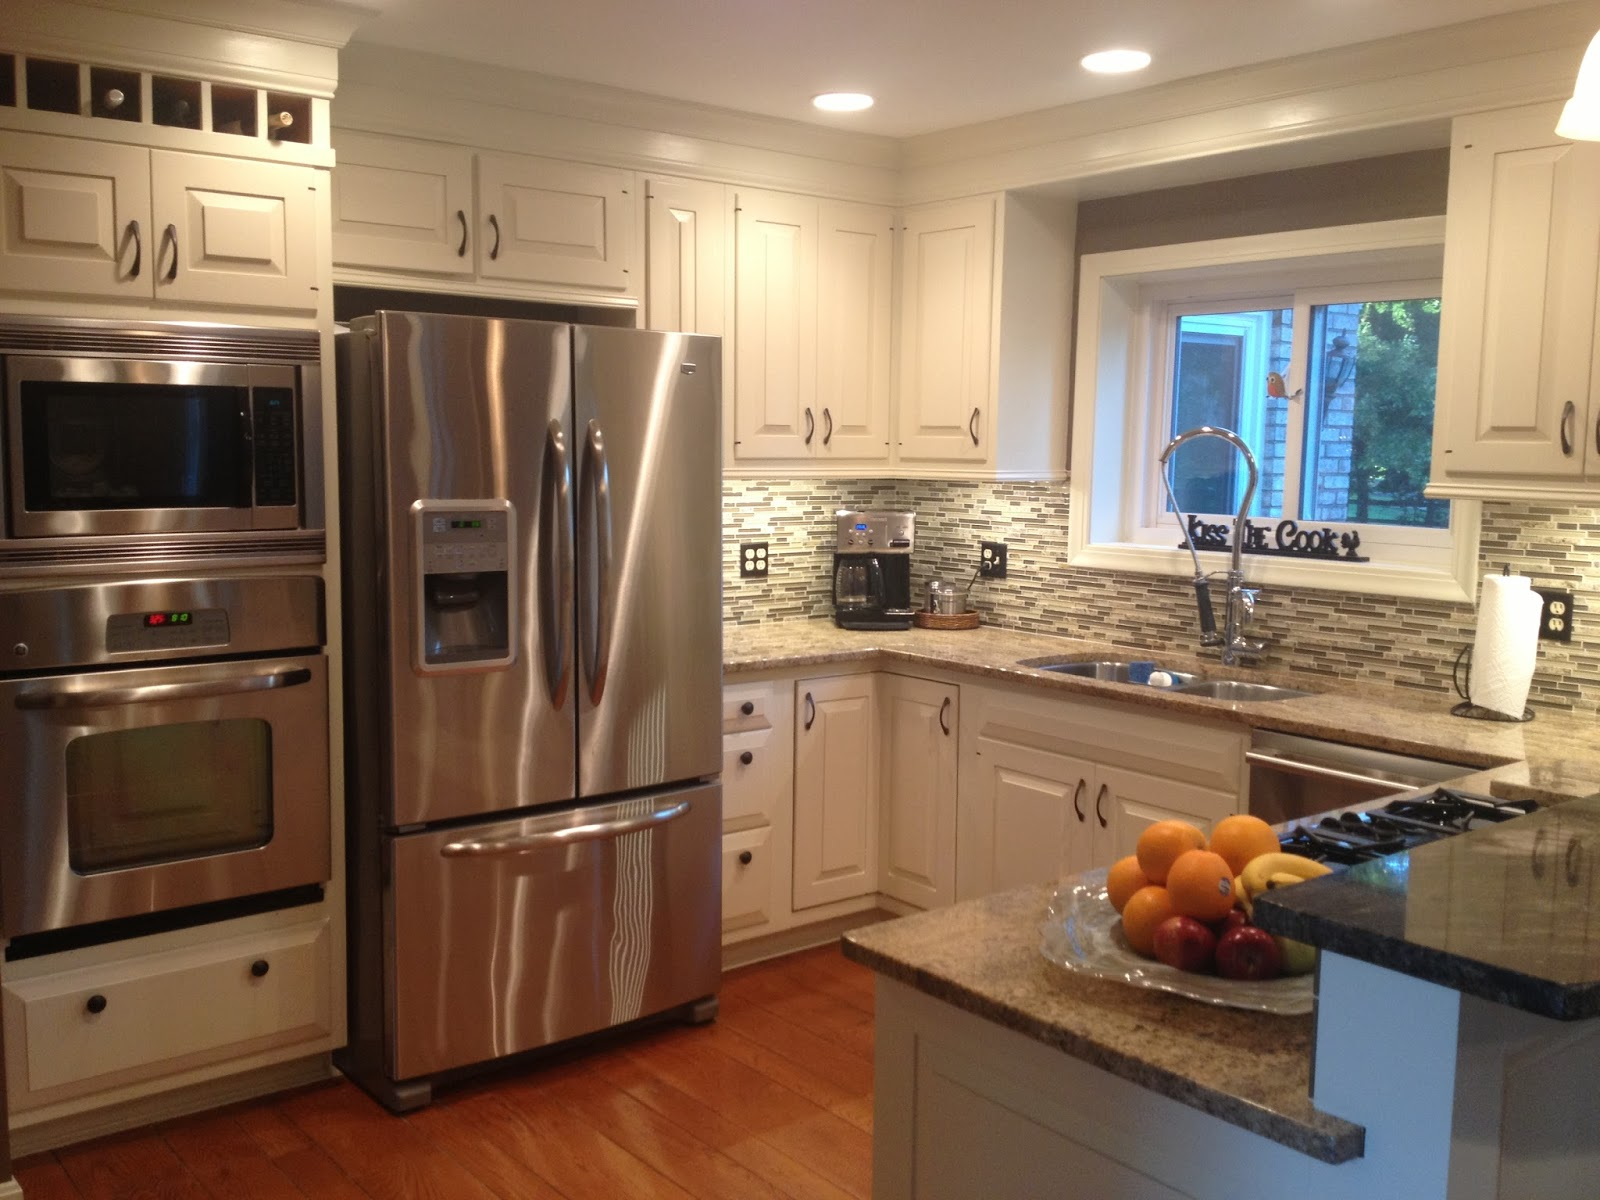 Four seasons style the new kitchen remodel on a budget for How to redo your kitchen